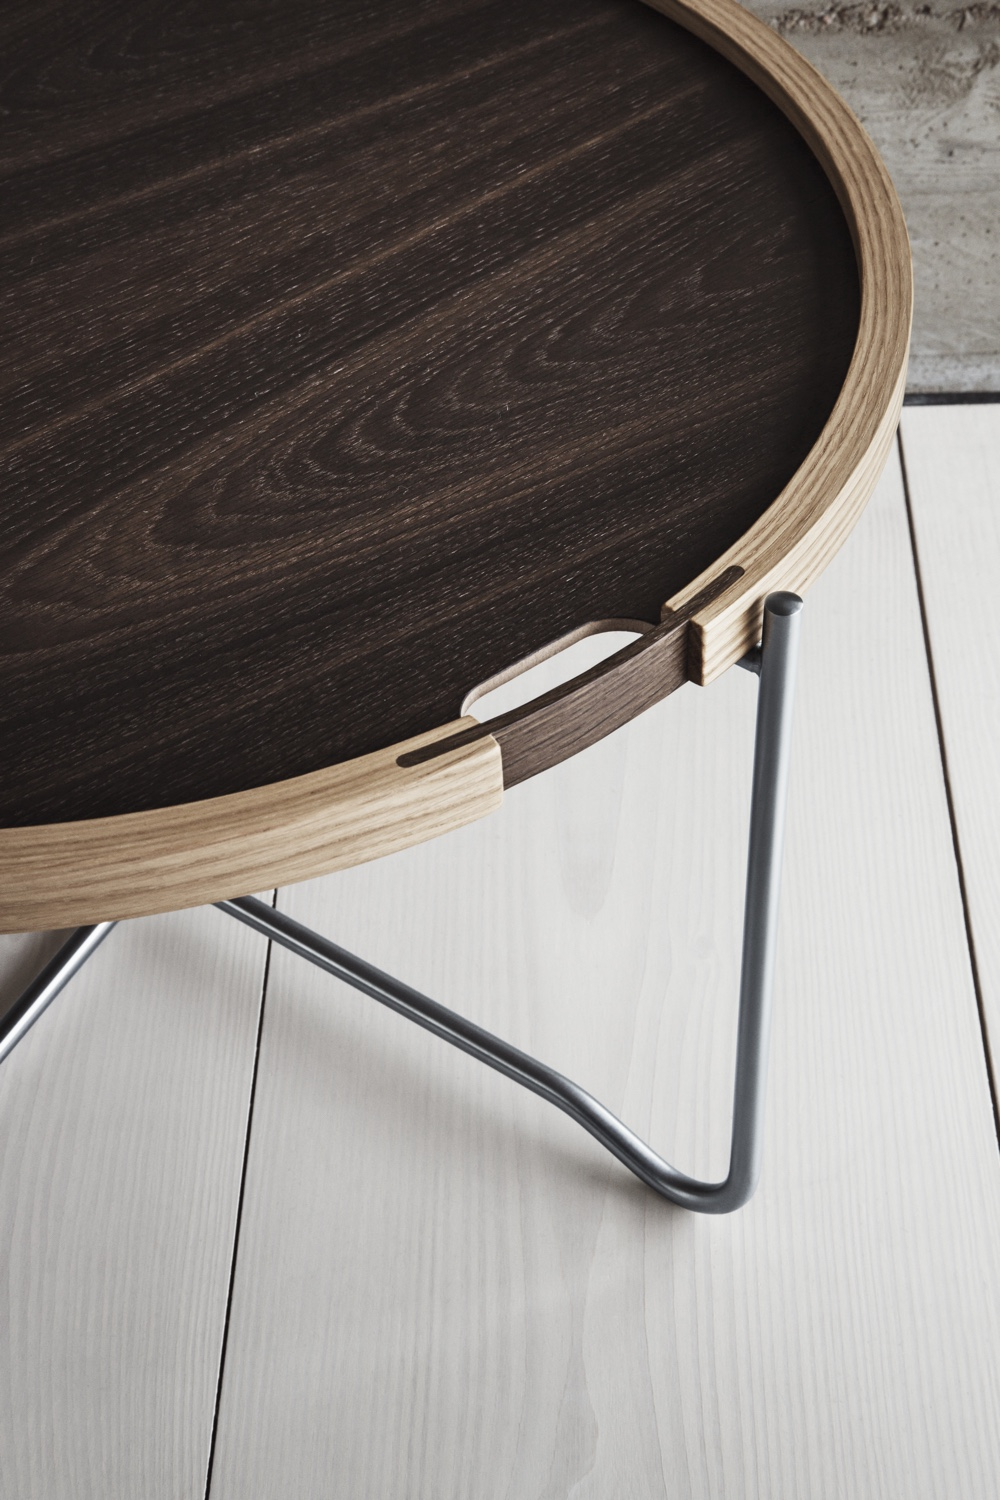 CH417 tray table with the smoked oak tray facing up.